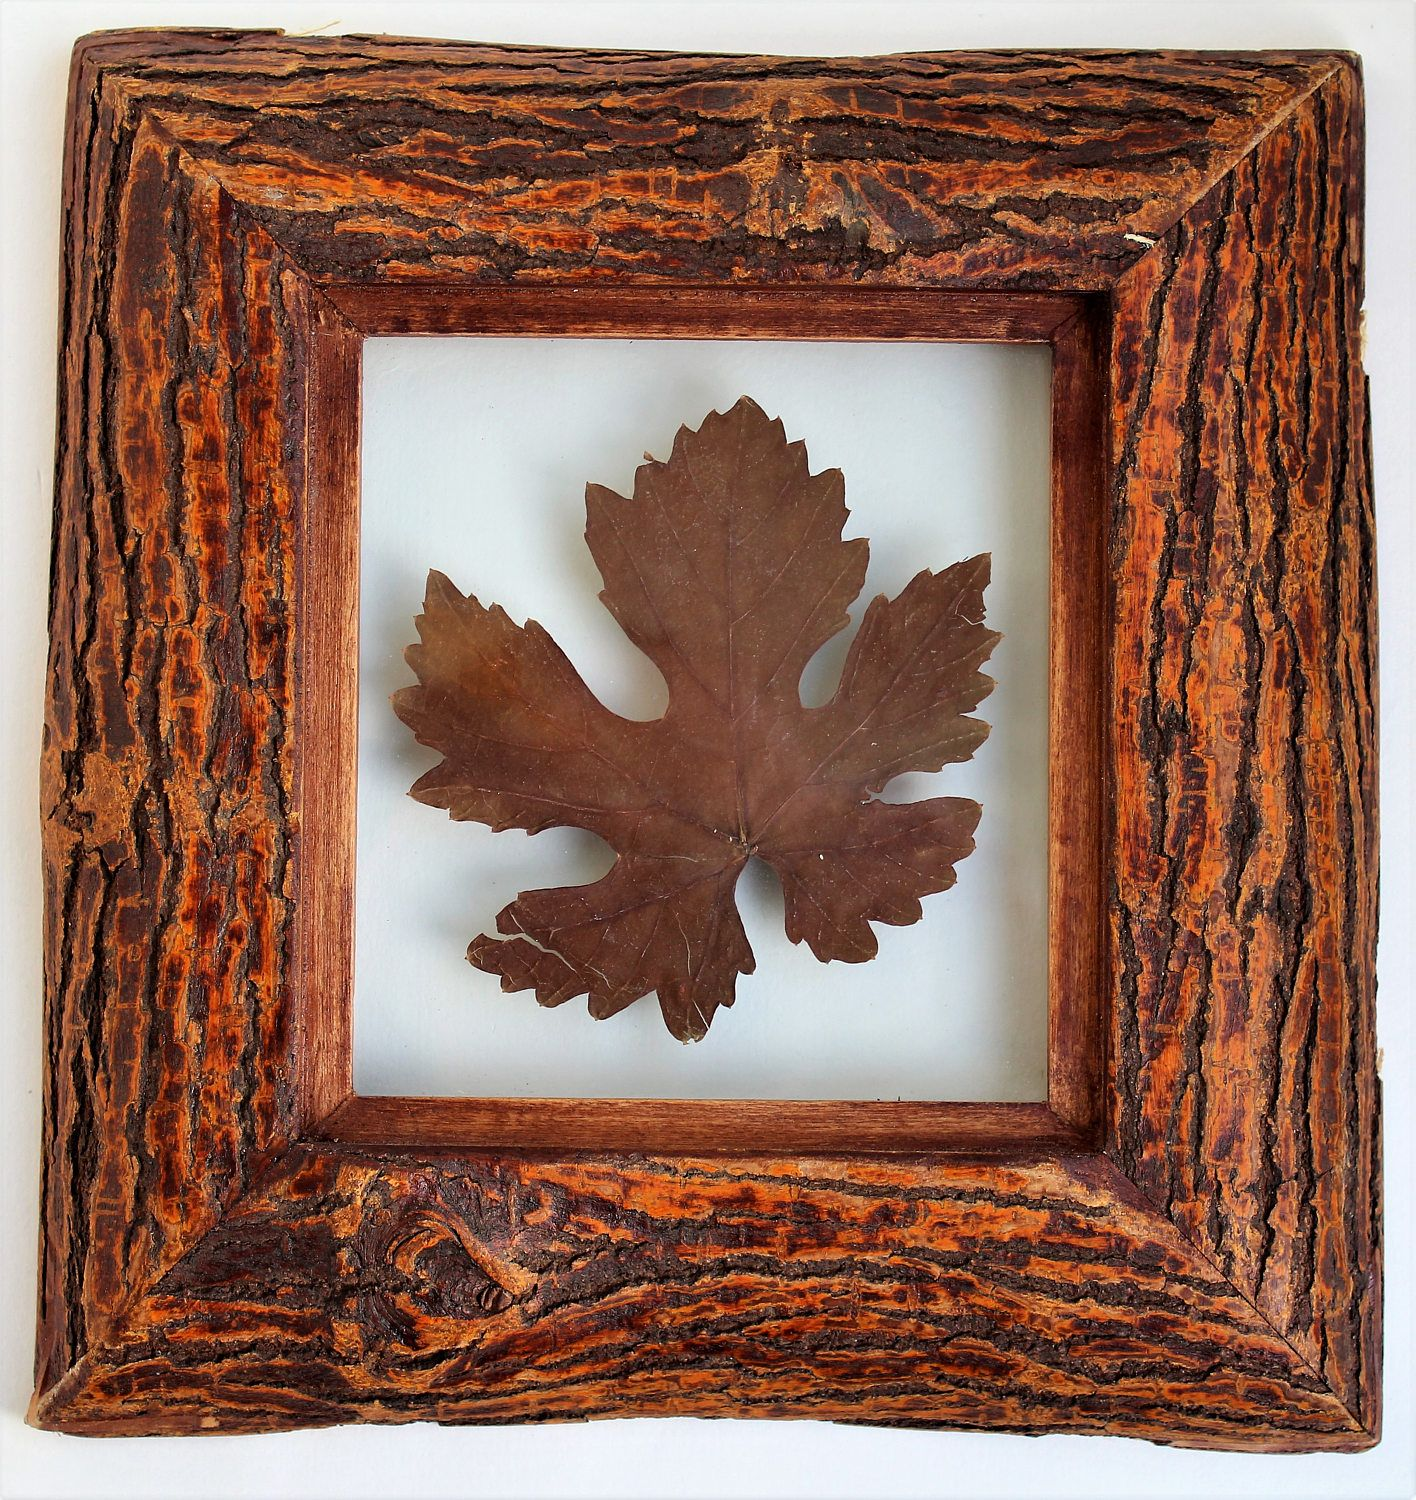 Rustic wood frame, handmade pressed plant, 9x9 inches, (23x23 cm\'s ...